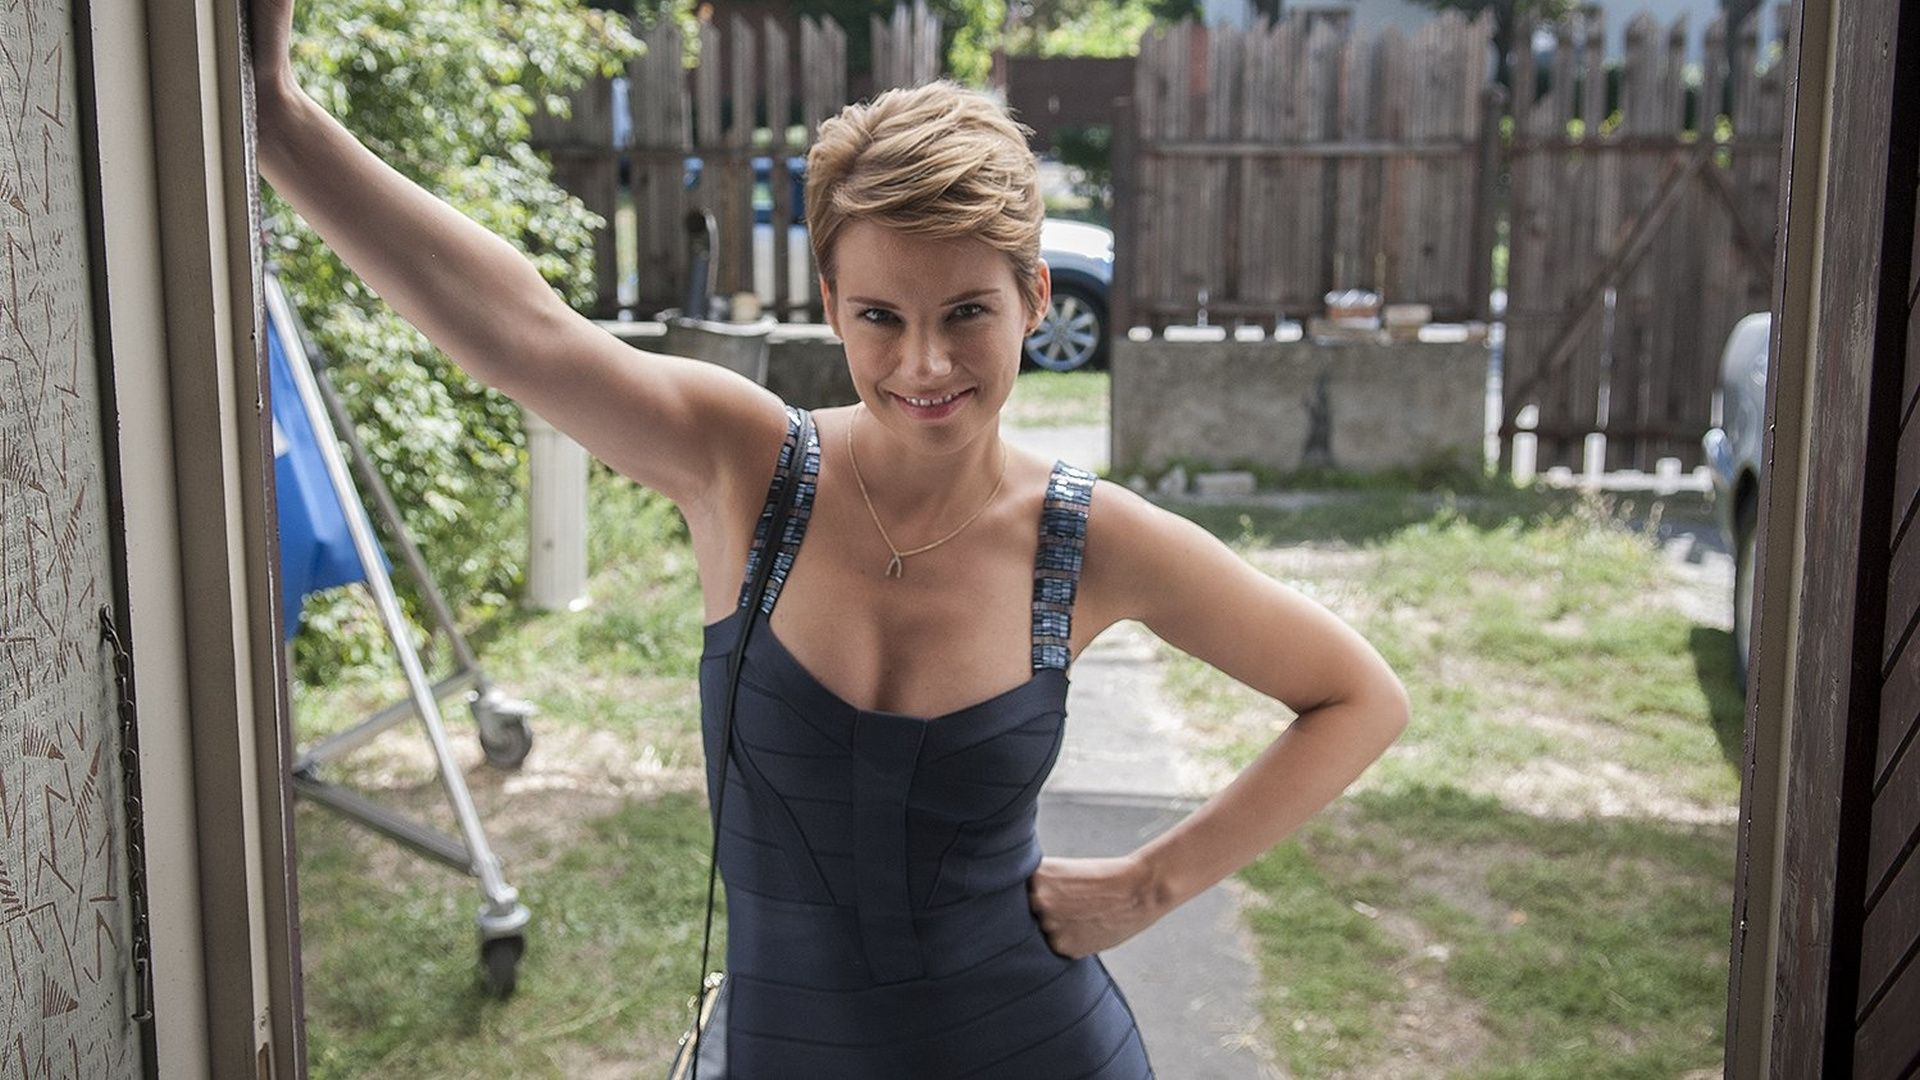 Andrea Osvart Hot Pics what ever happened to timi (2014) - where to watch it